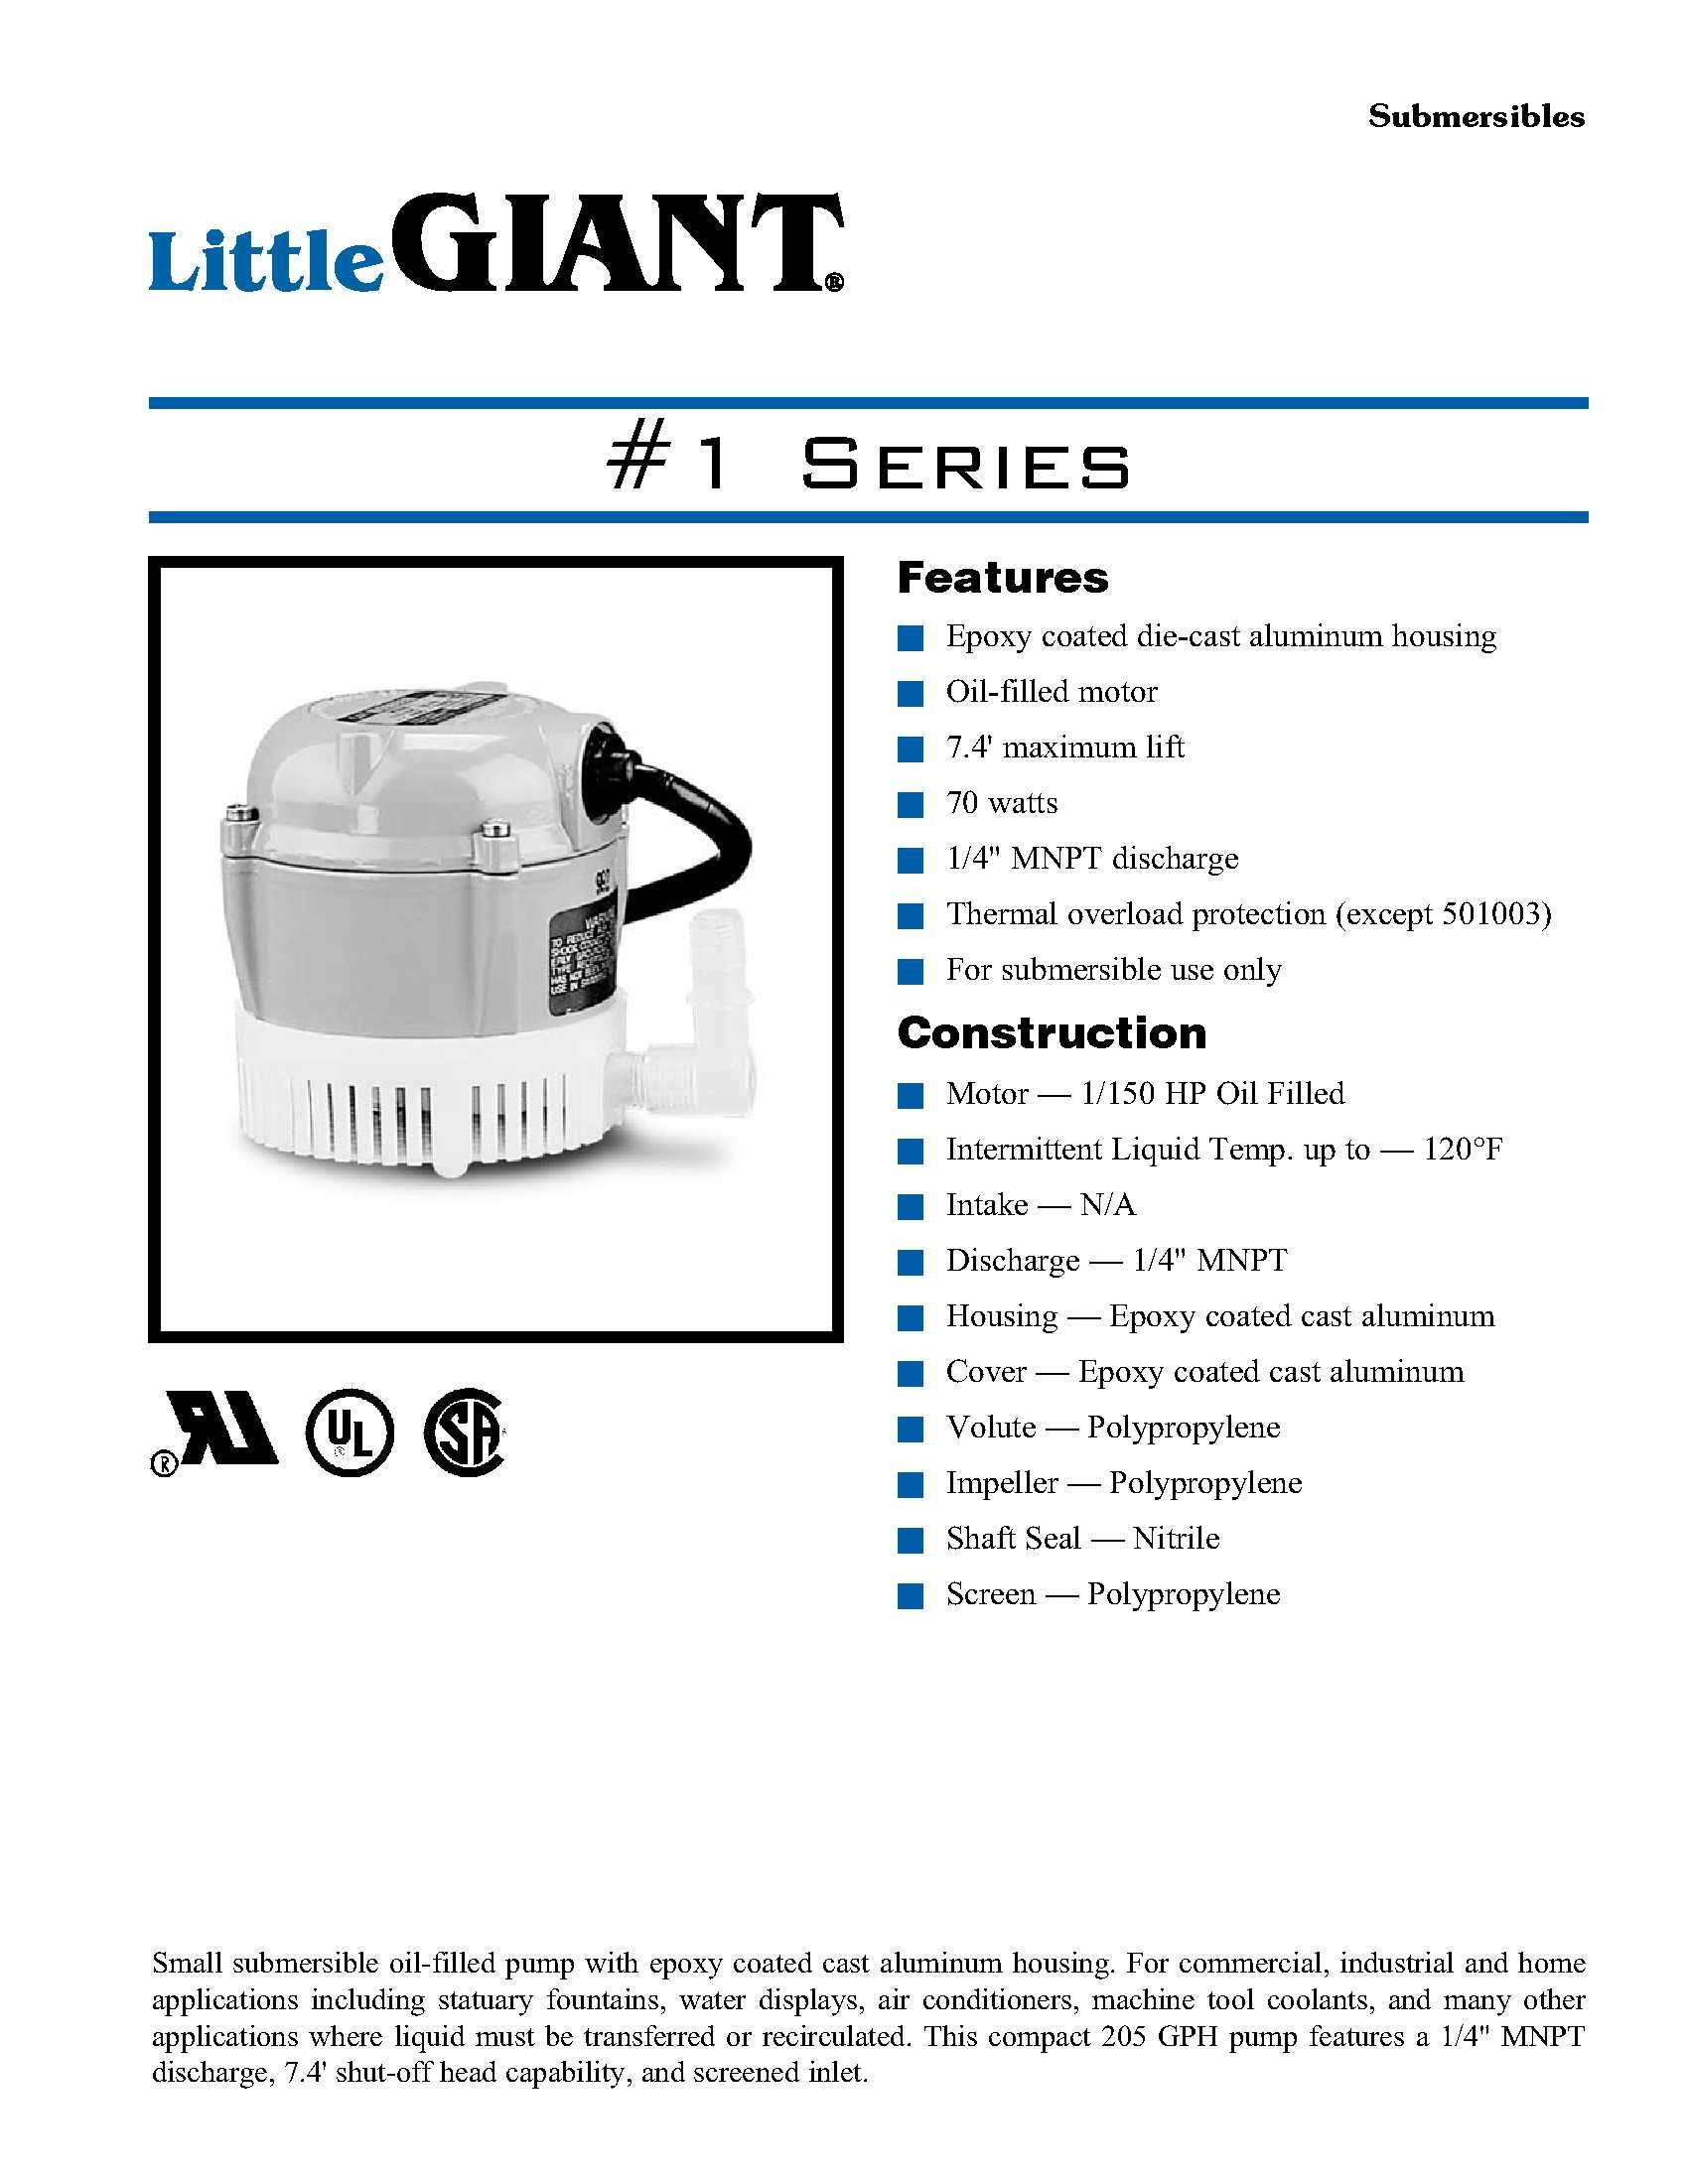 Little Giant 501003 1 115 Volt 205 GPH Oil-Filled Small Submersible Pump by LITTLE GIANT (Image #2)